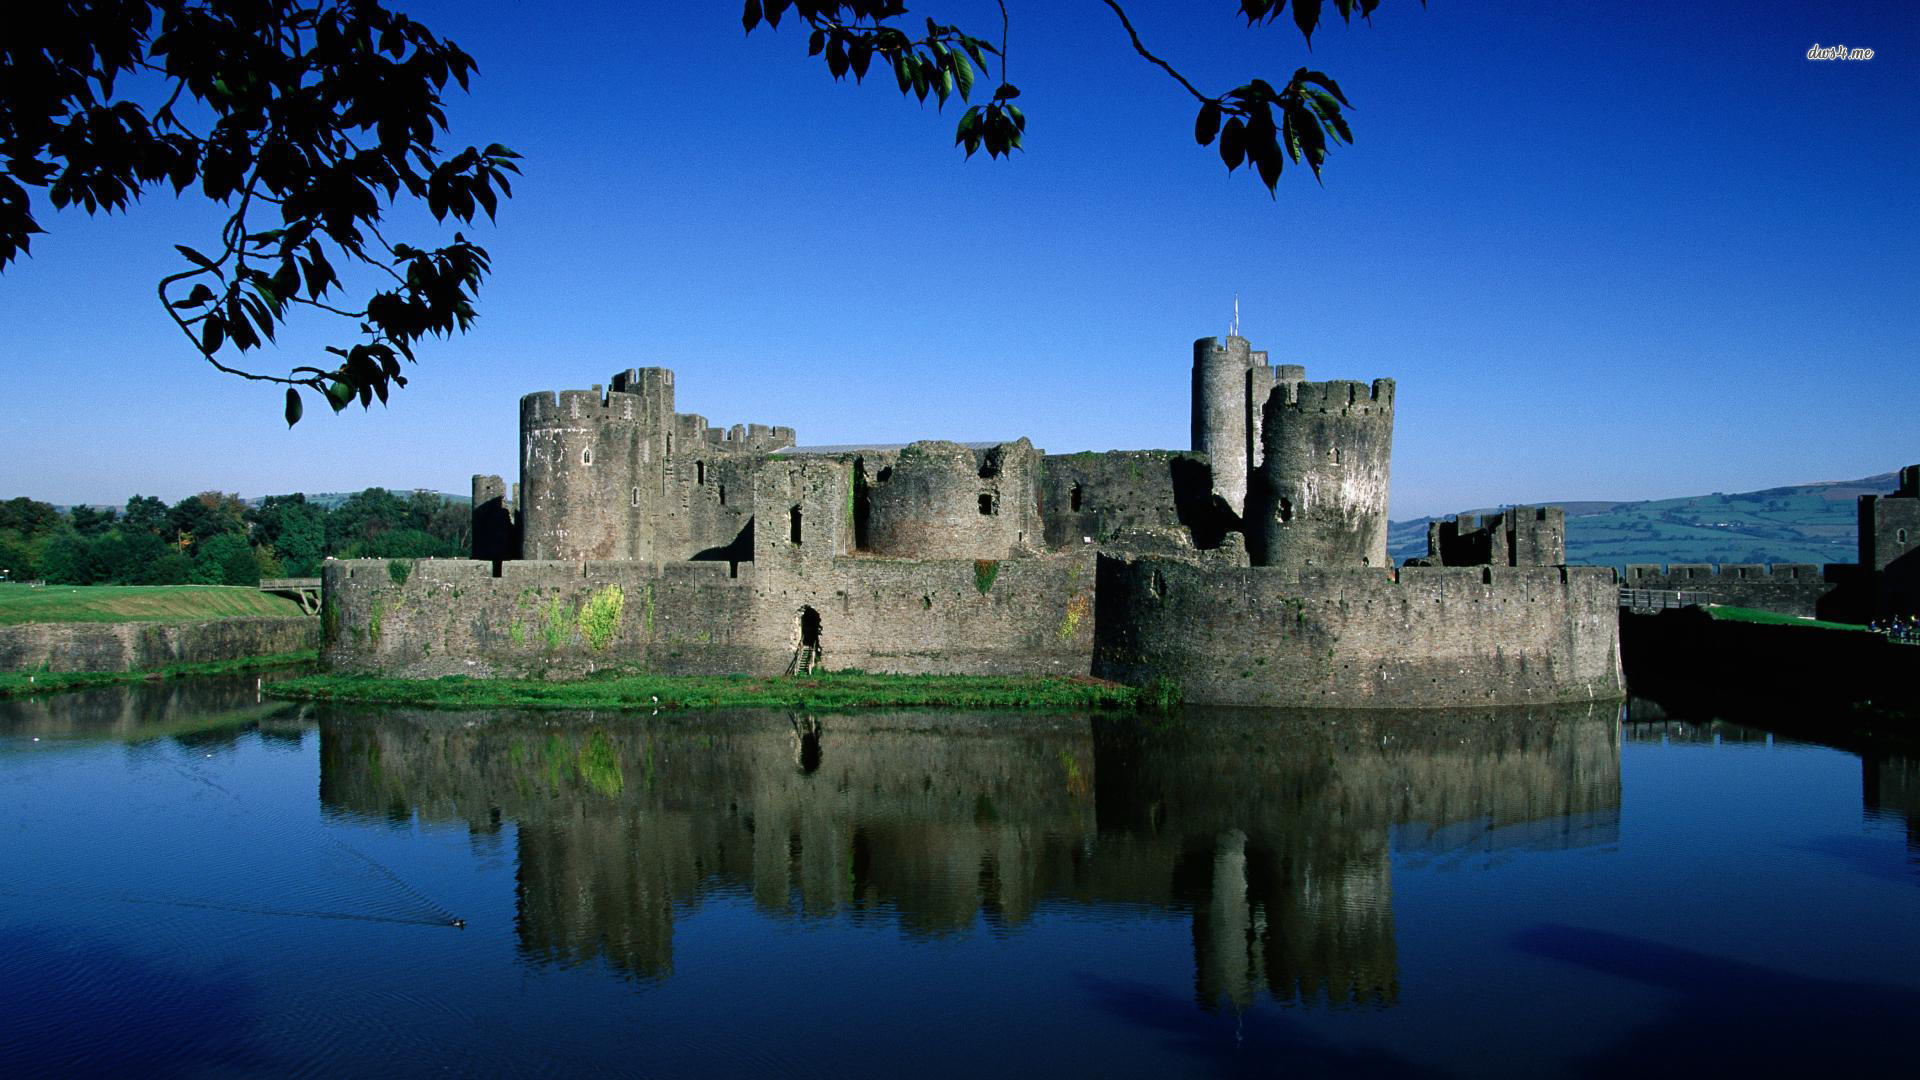 Caerphilly Castle Wales wallpaper 1920x1080